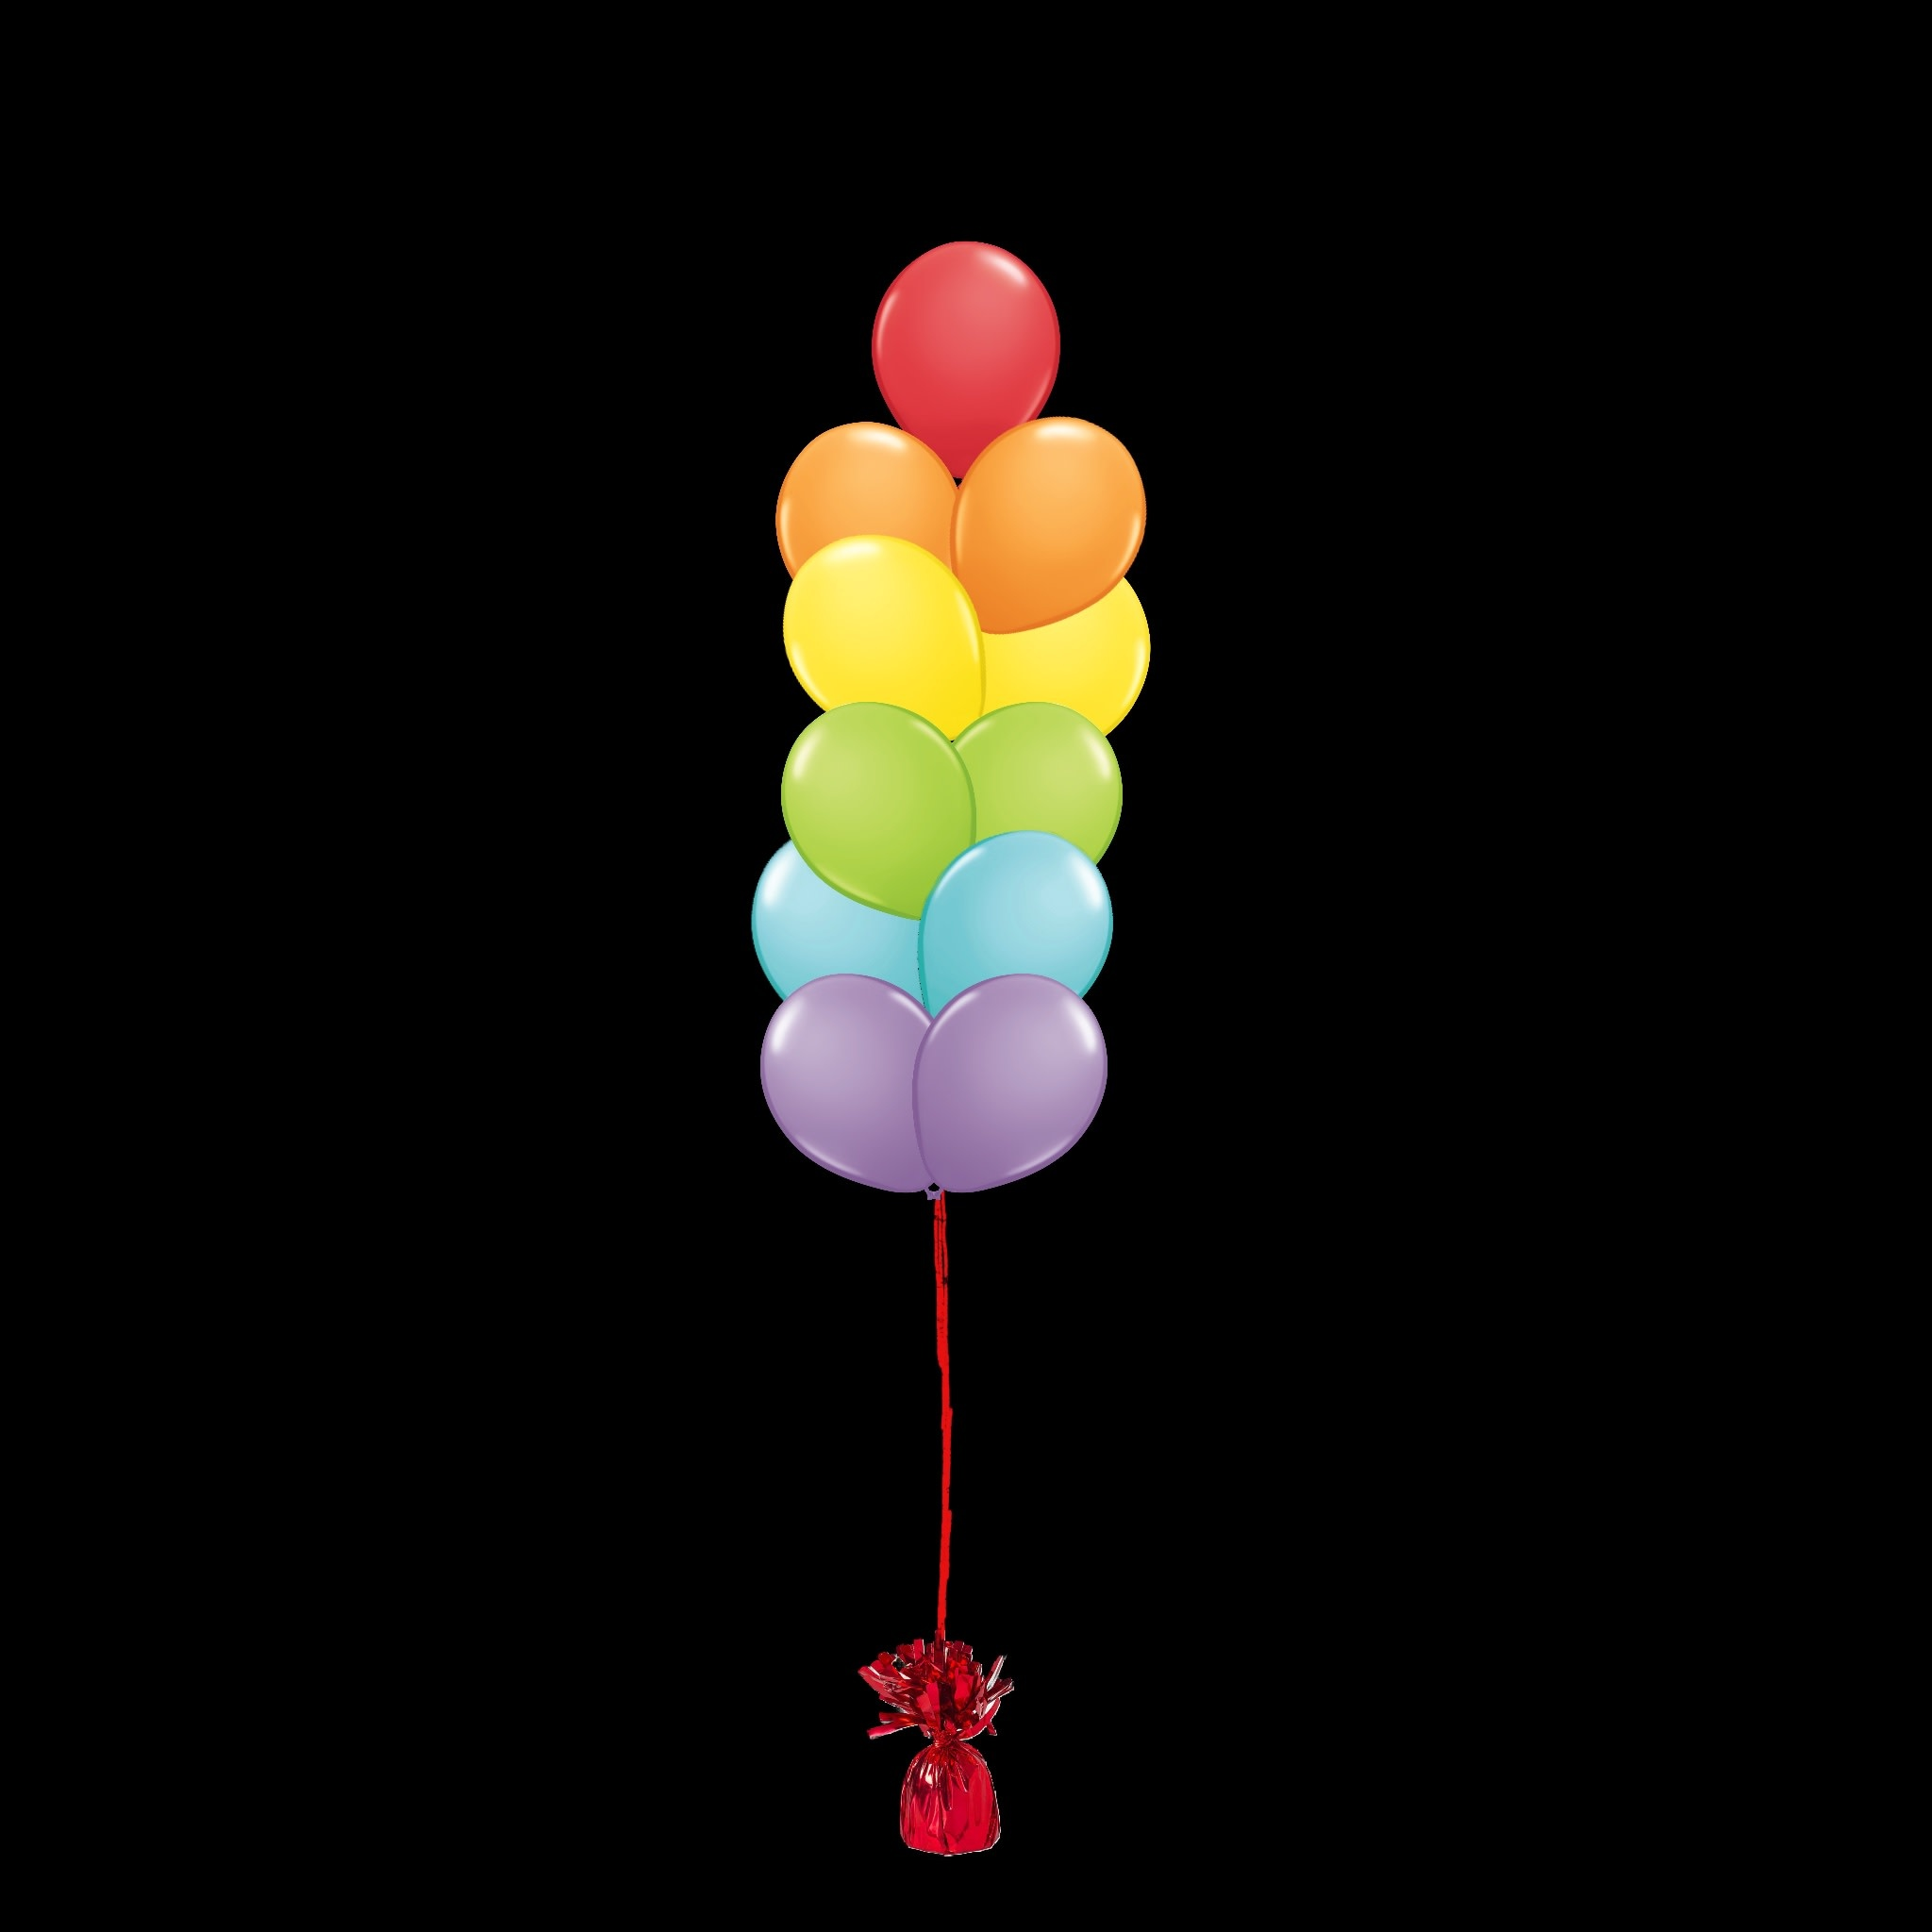 11 Balloons to a Weight Not-Treated